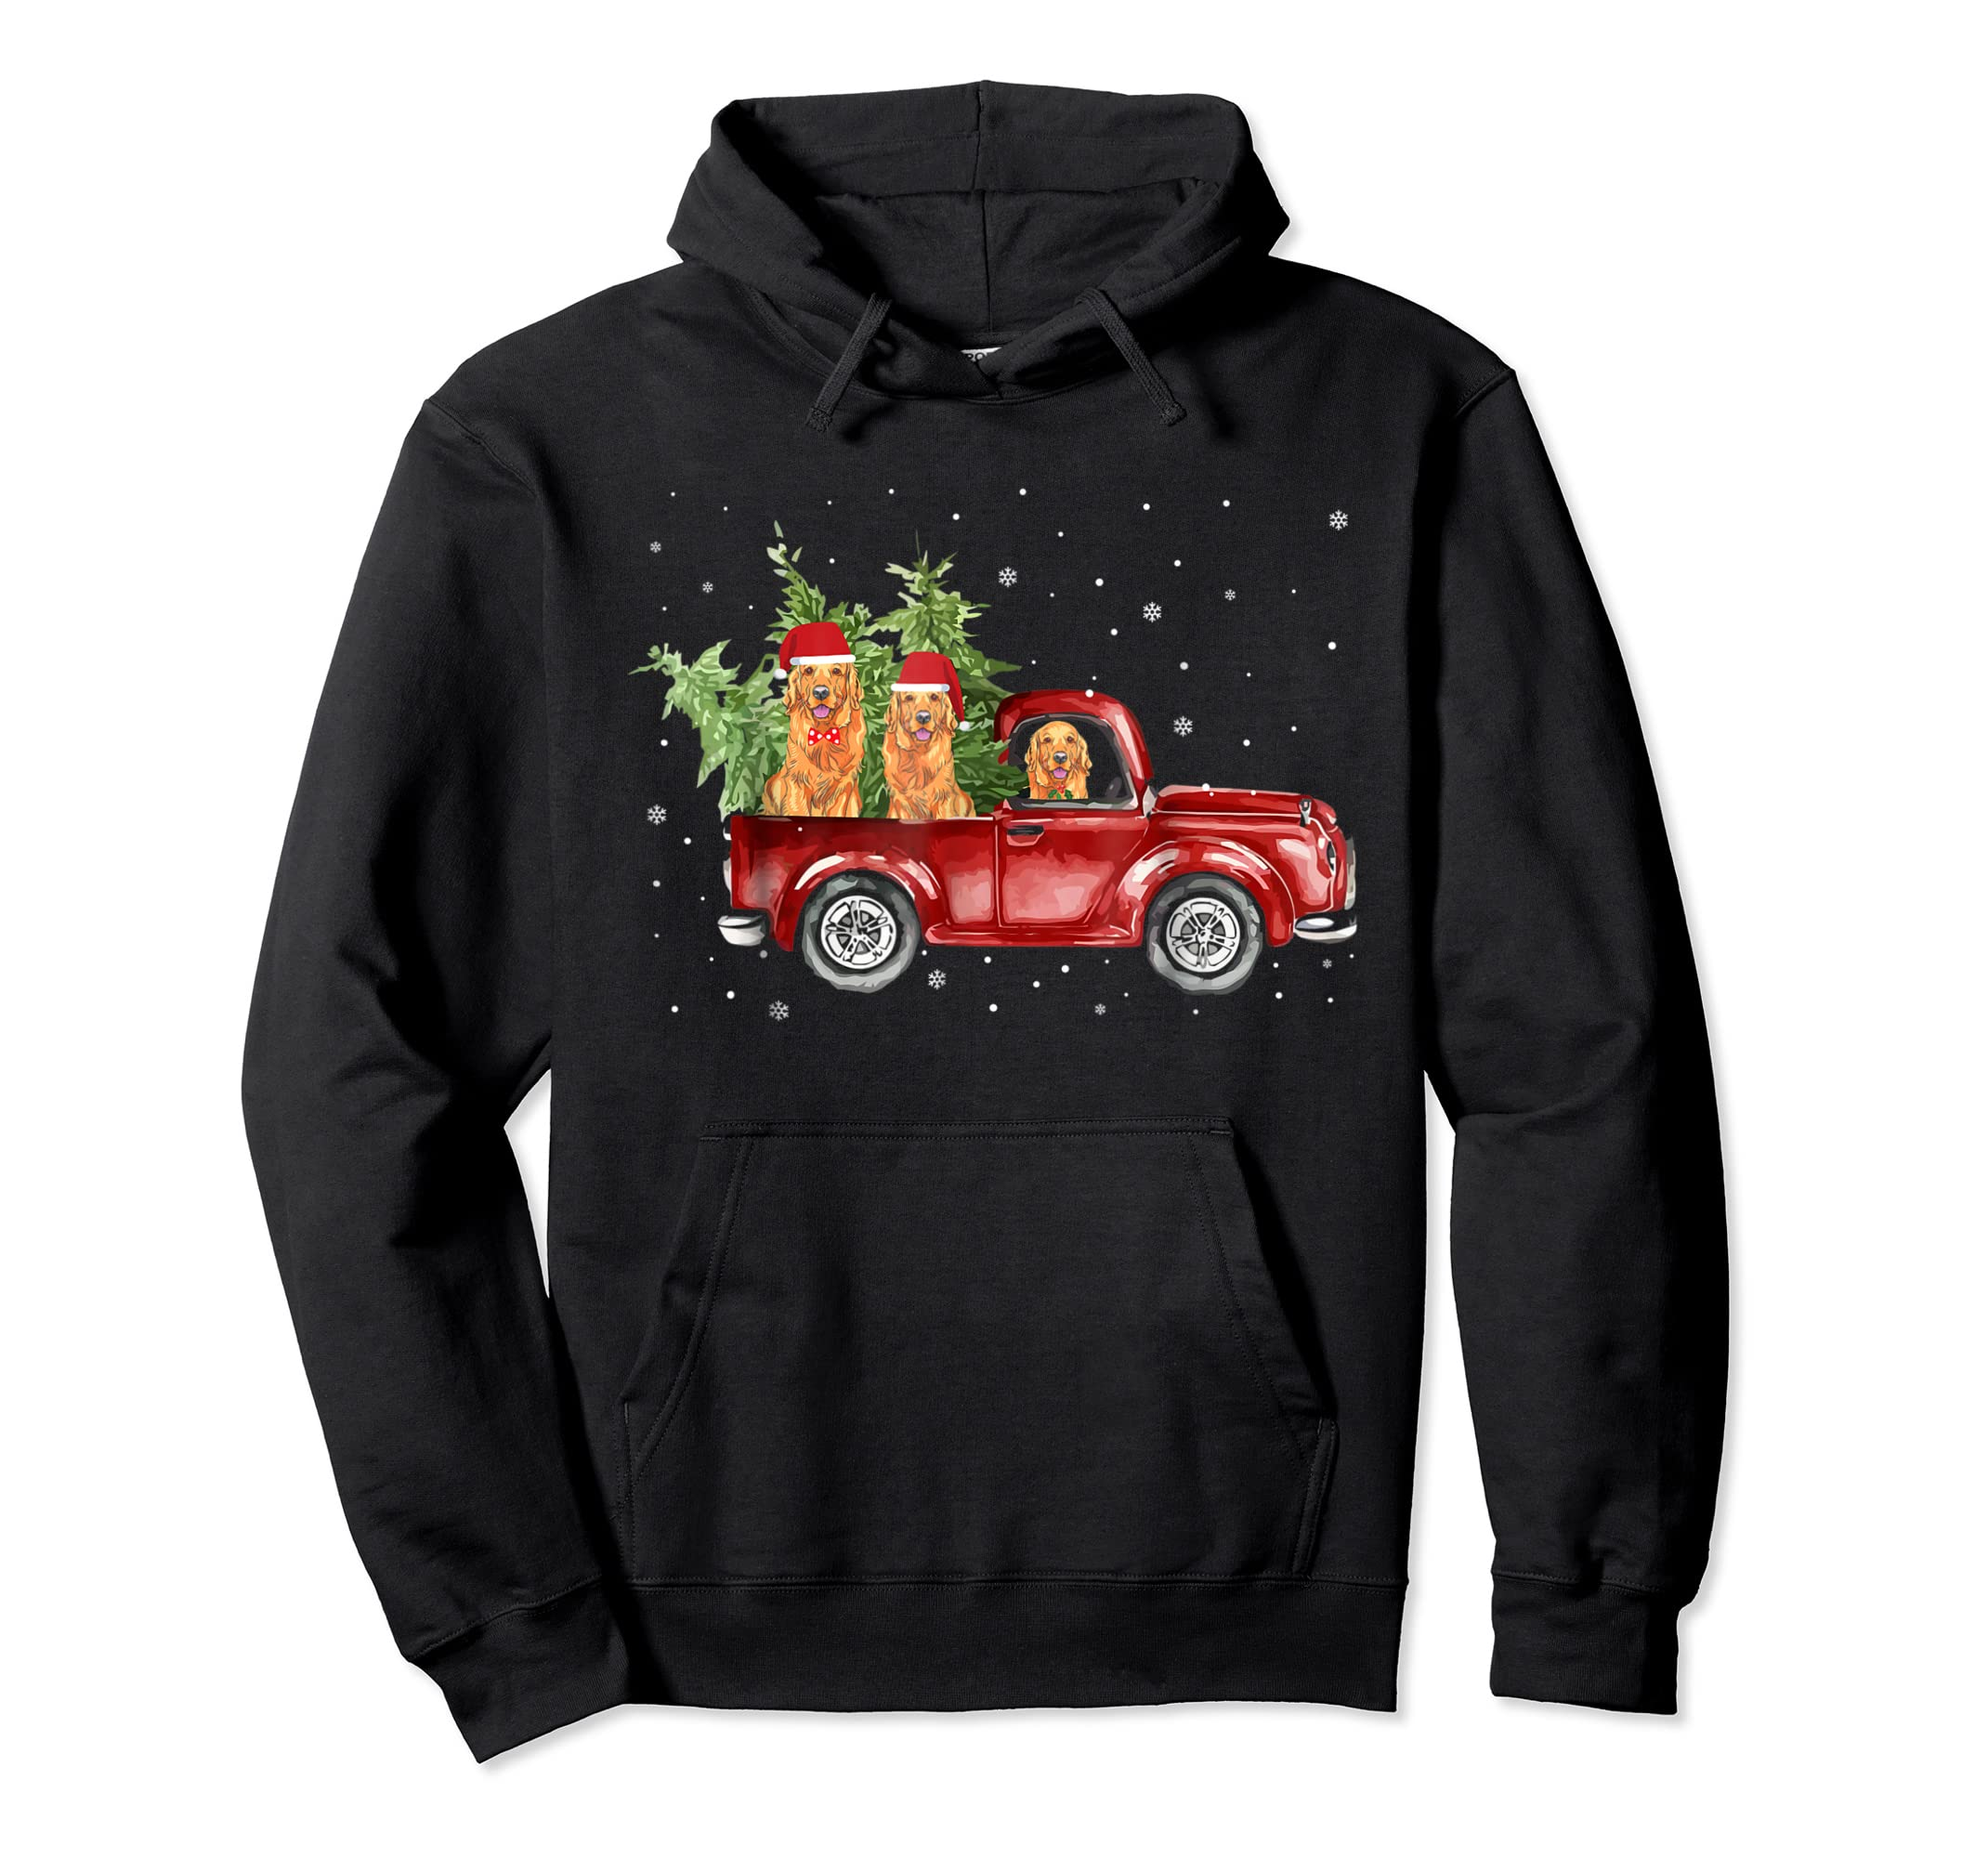 Golden Retriever Pickup Truck Christmas Tshirt-Hoodie-Black